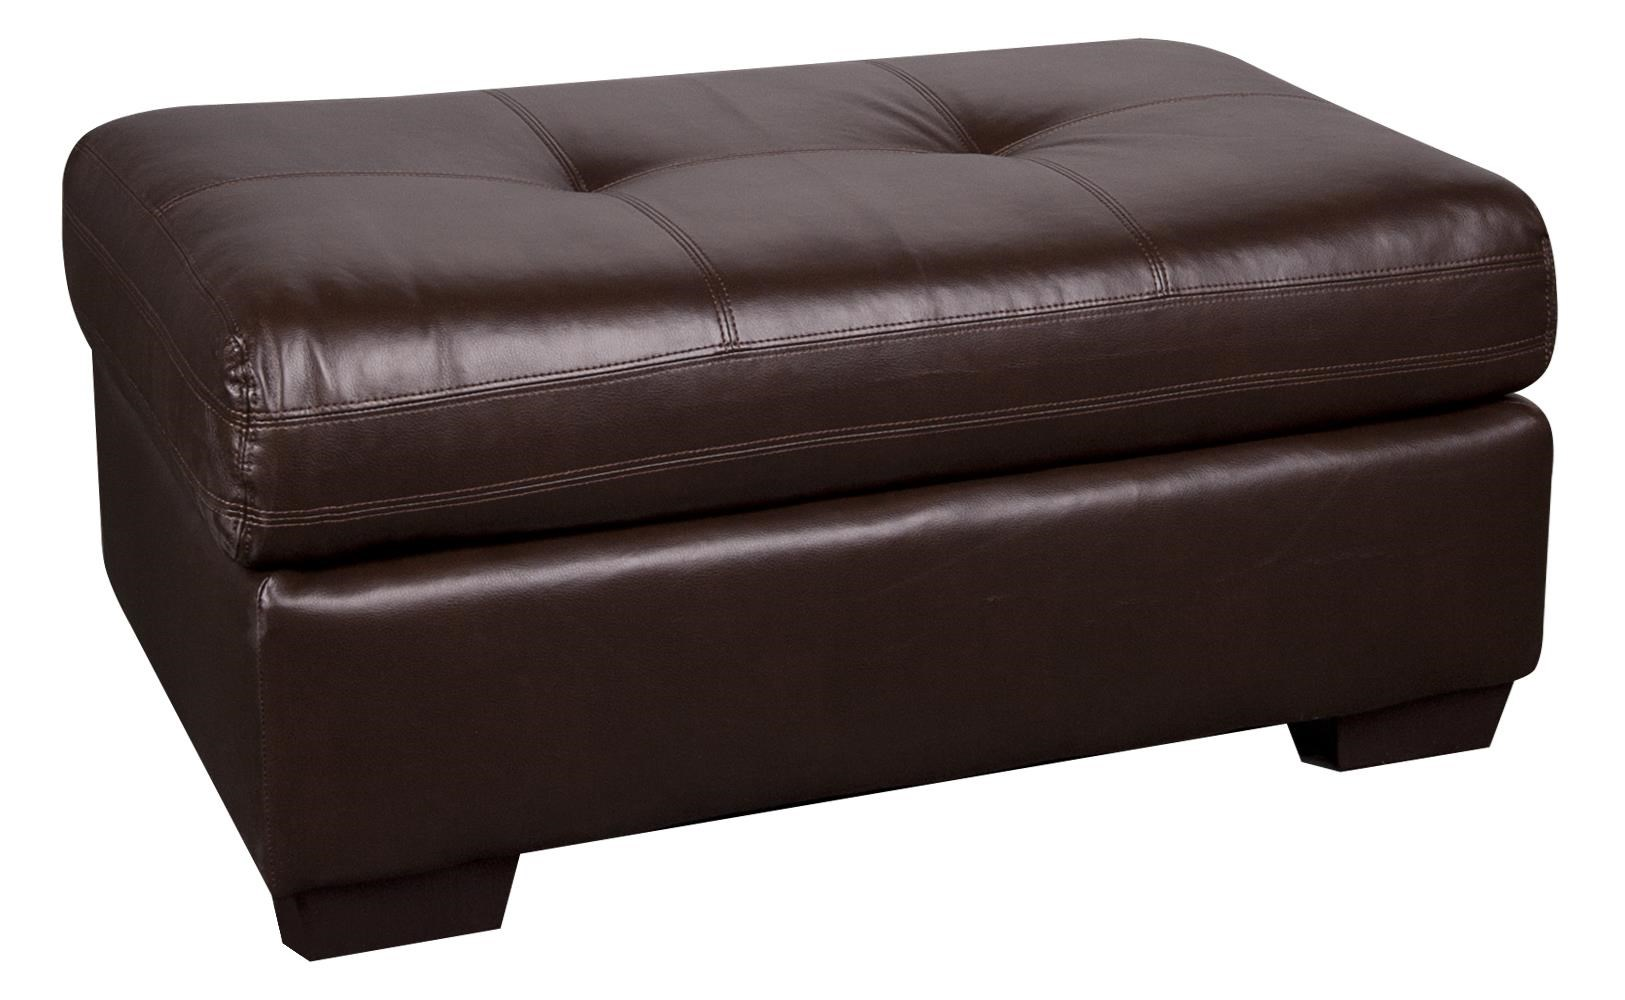 Morris Home Furnishings Arlo Arlo Ottoman - Item Number: 244080734